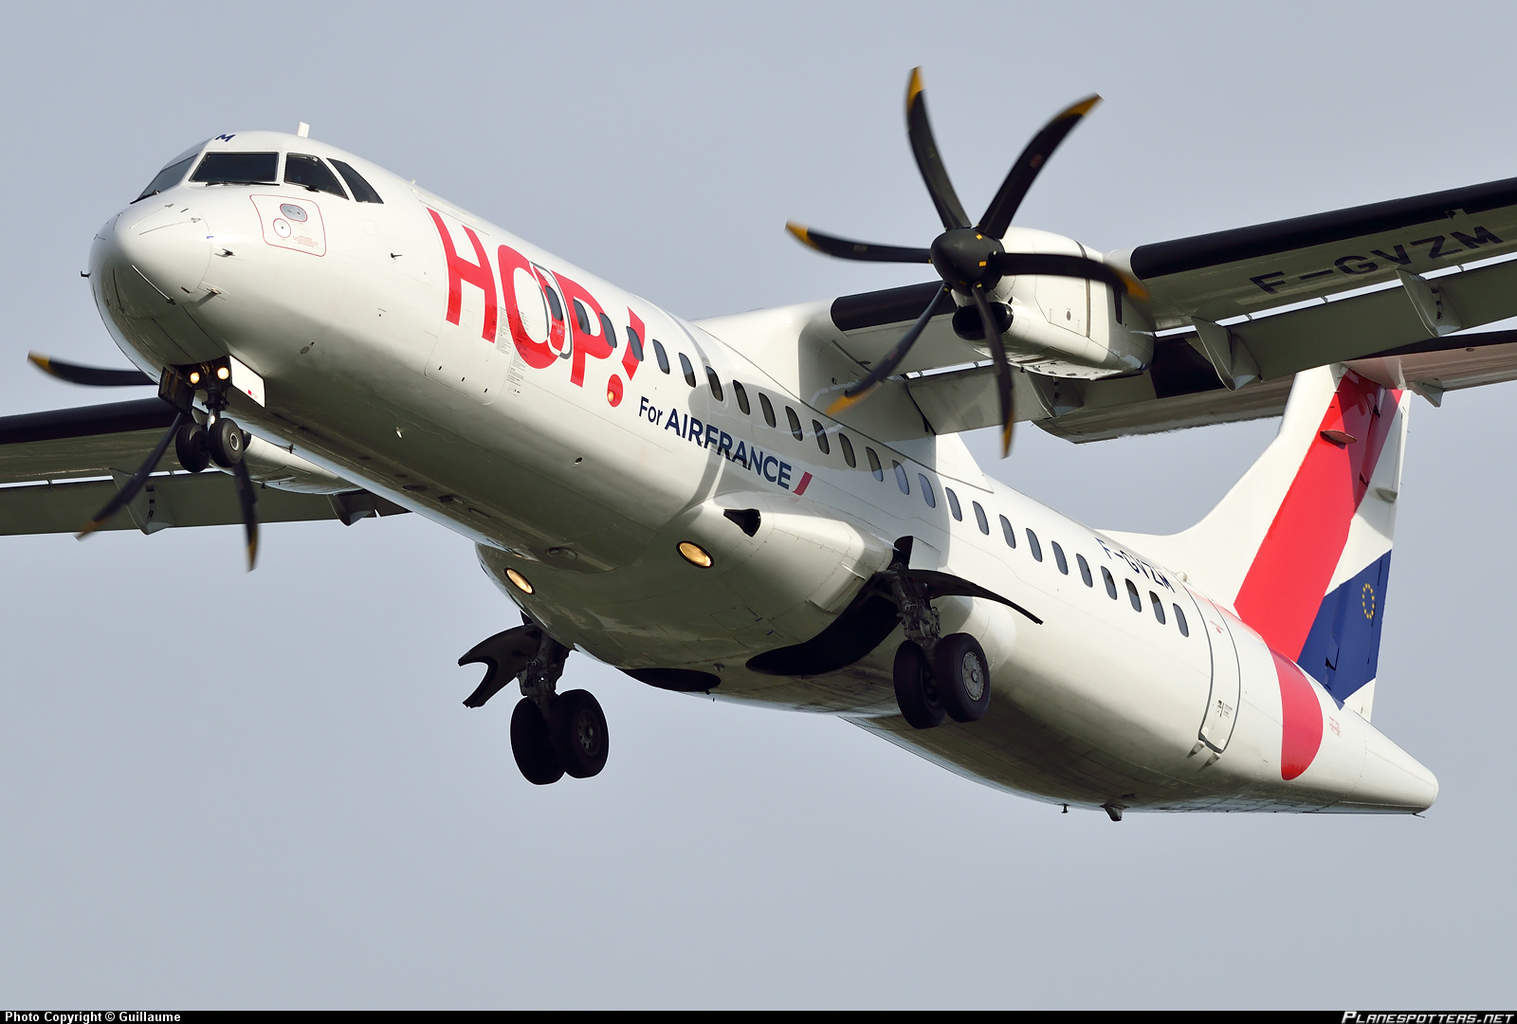 HOP! For Air France (operated by Airlinair) ATR72 has malfunctioning weather radar